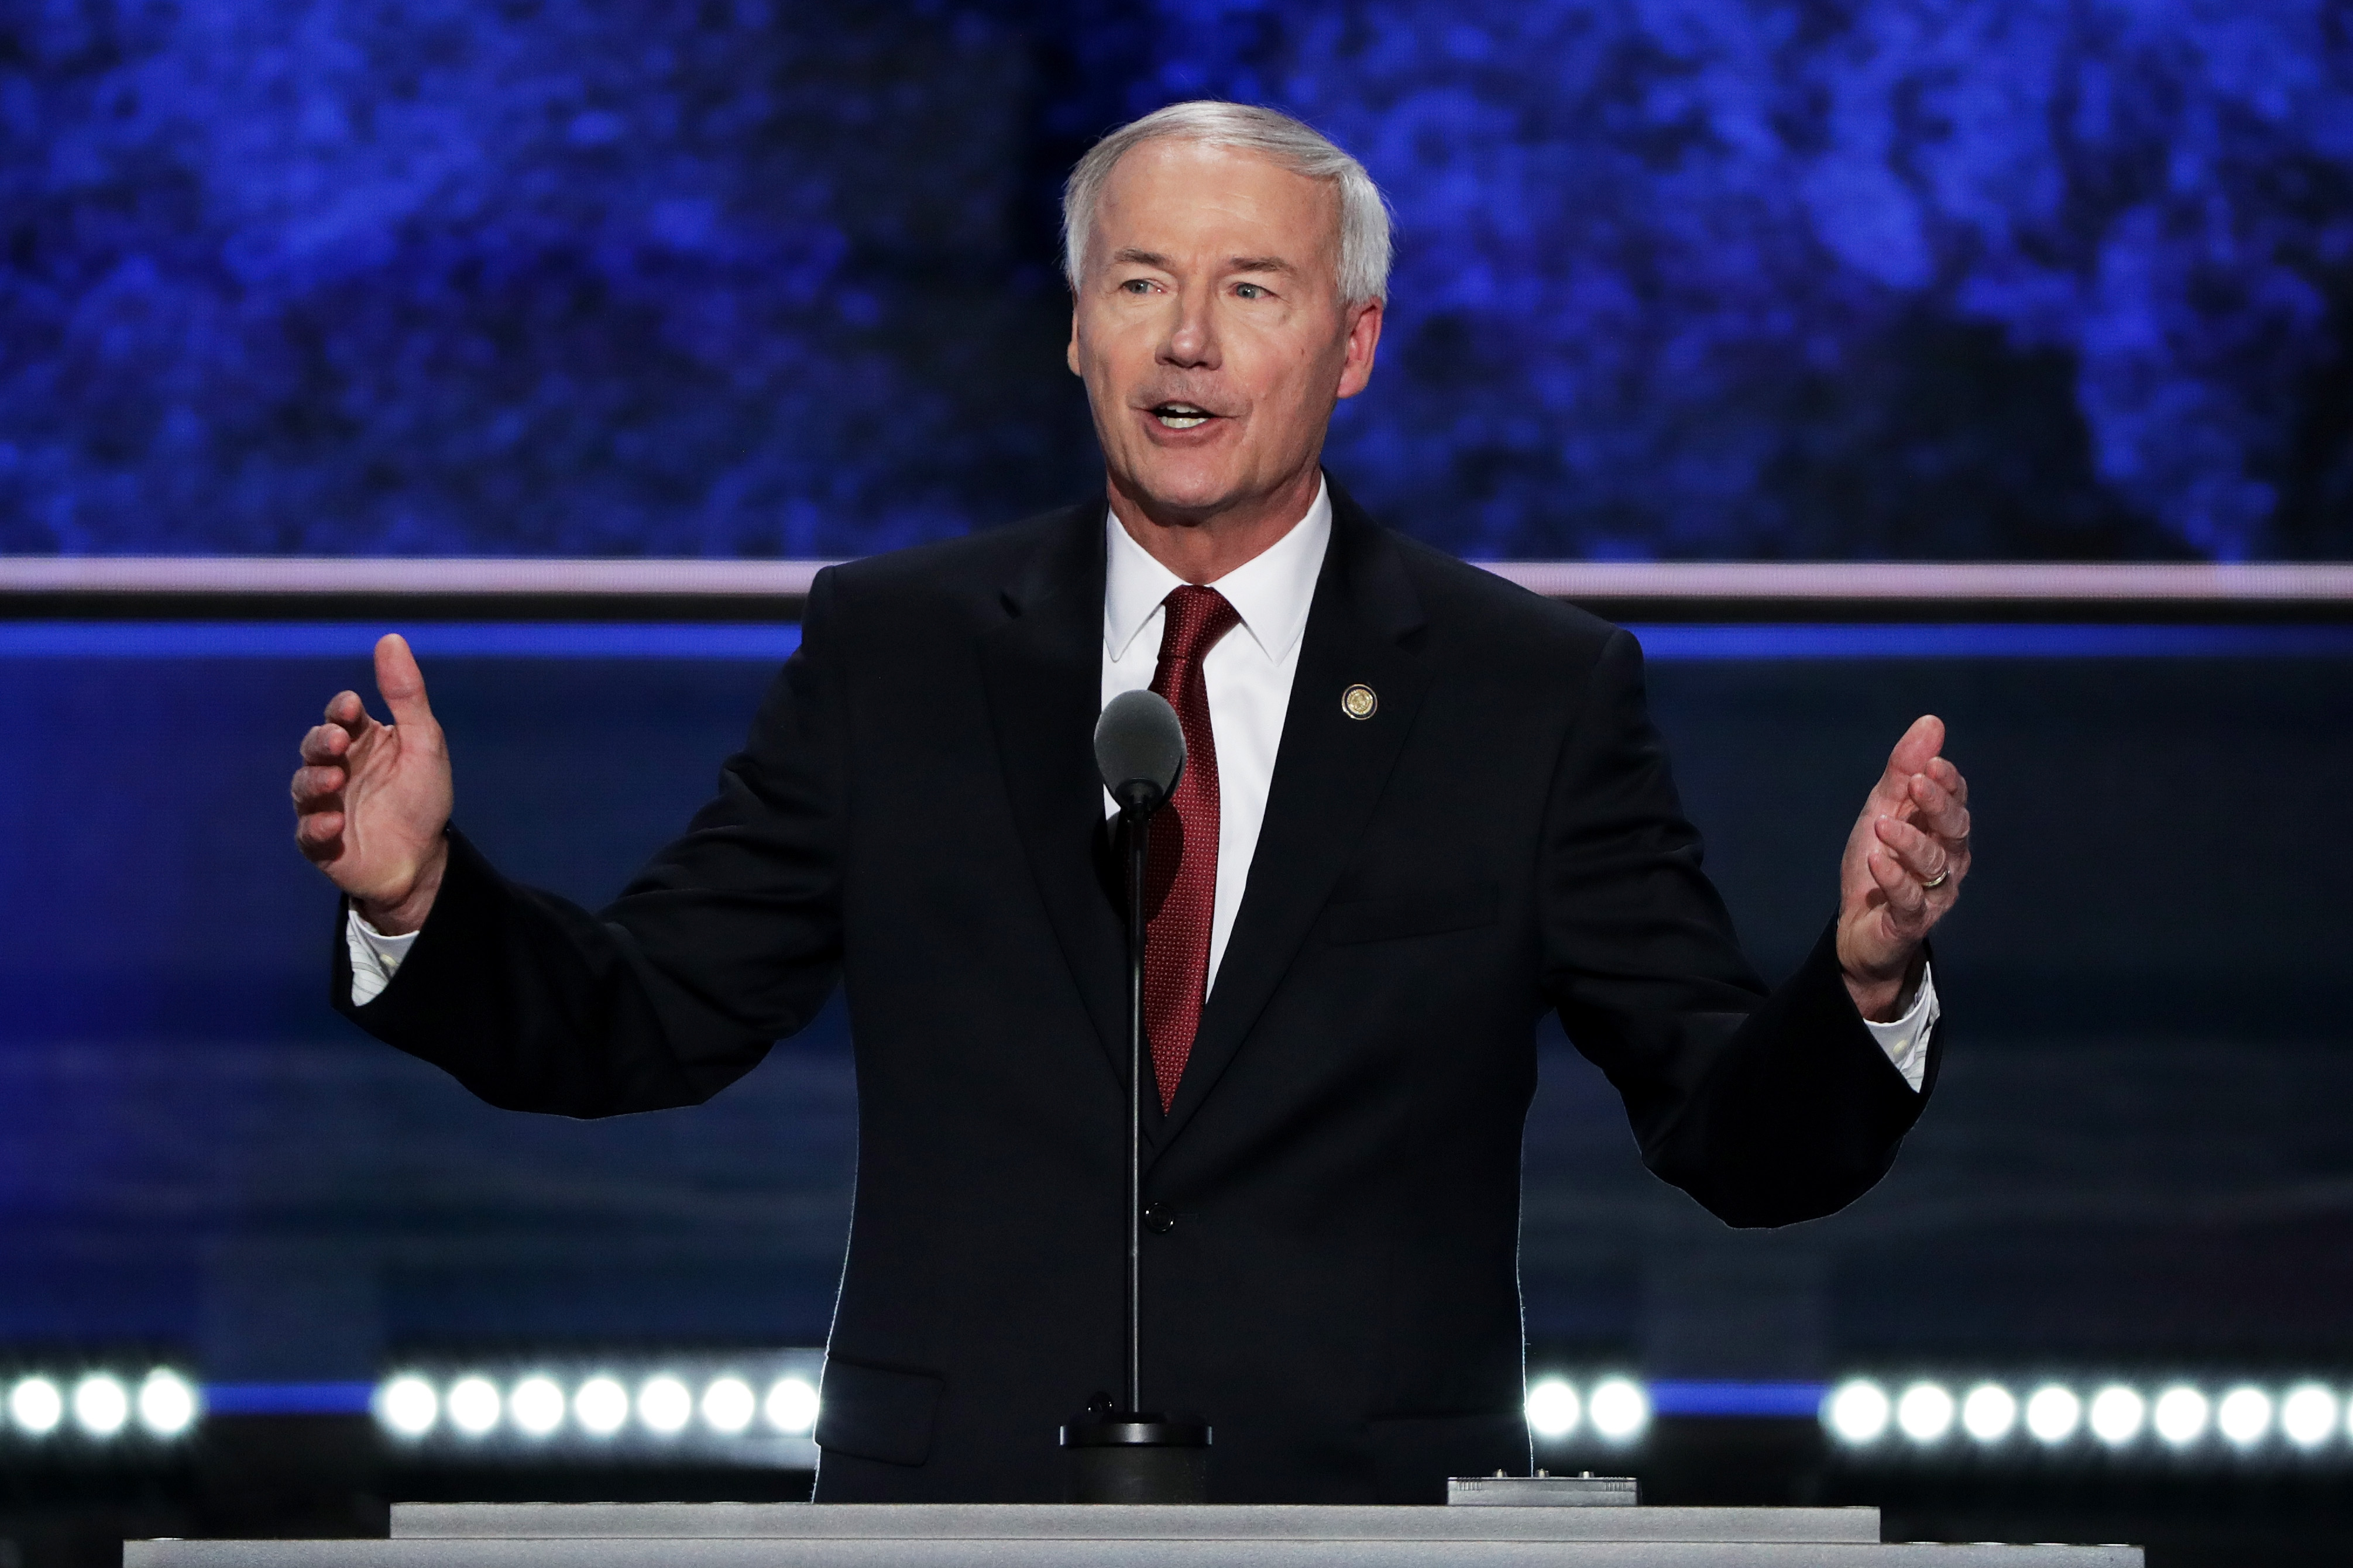 Arkansas Gov. Asa Hutchinson delivers a speech on the second day of the Republican National Convention on July 19, 2016. (Alex Wong/Getty Images)